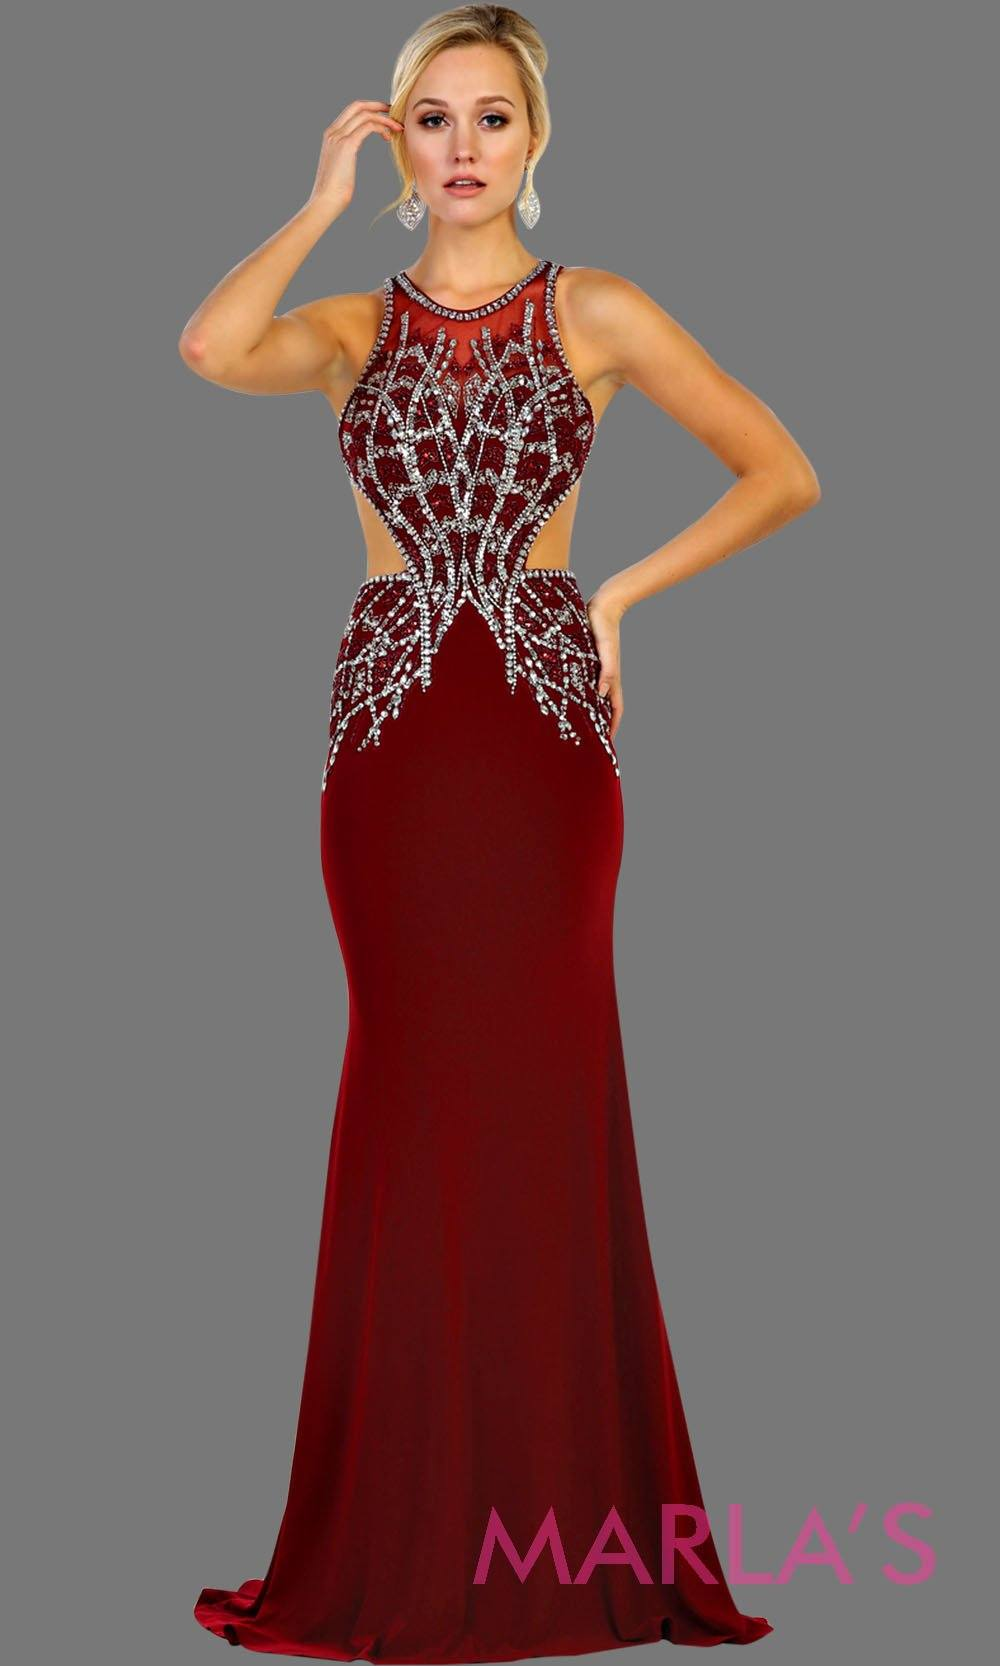 Long dark red high neck beaded dress with open back. Perfect burgundy gown for prom, gala, formal wedding guest dress, low back hot pink gown, sleek and sexy dress.